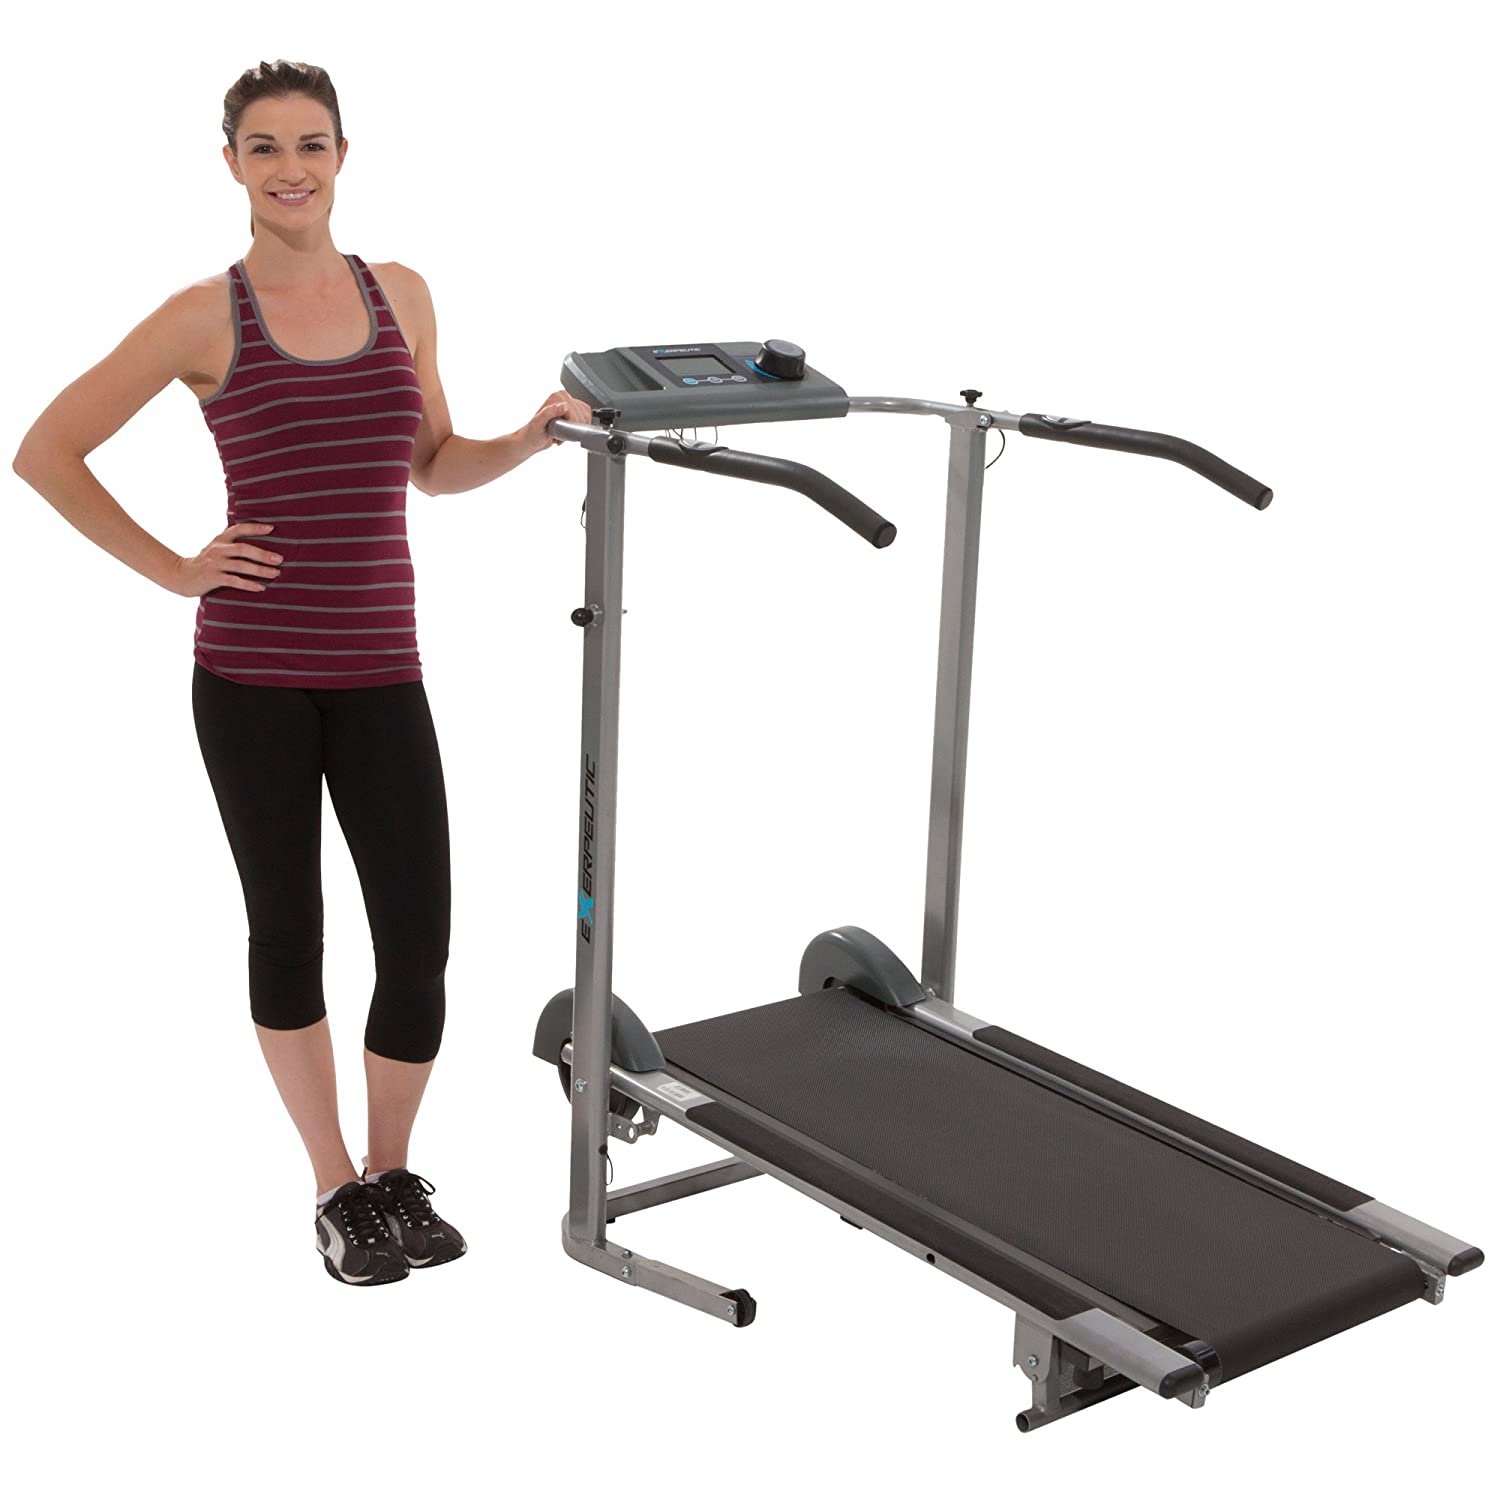 Exerpeutic-100XL-High-Capacity-Magnetic-Resistance-Manual-Treadmill